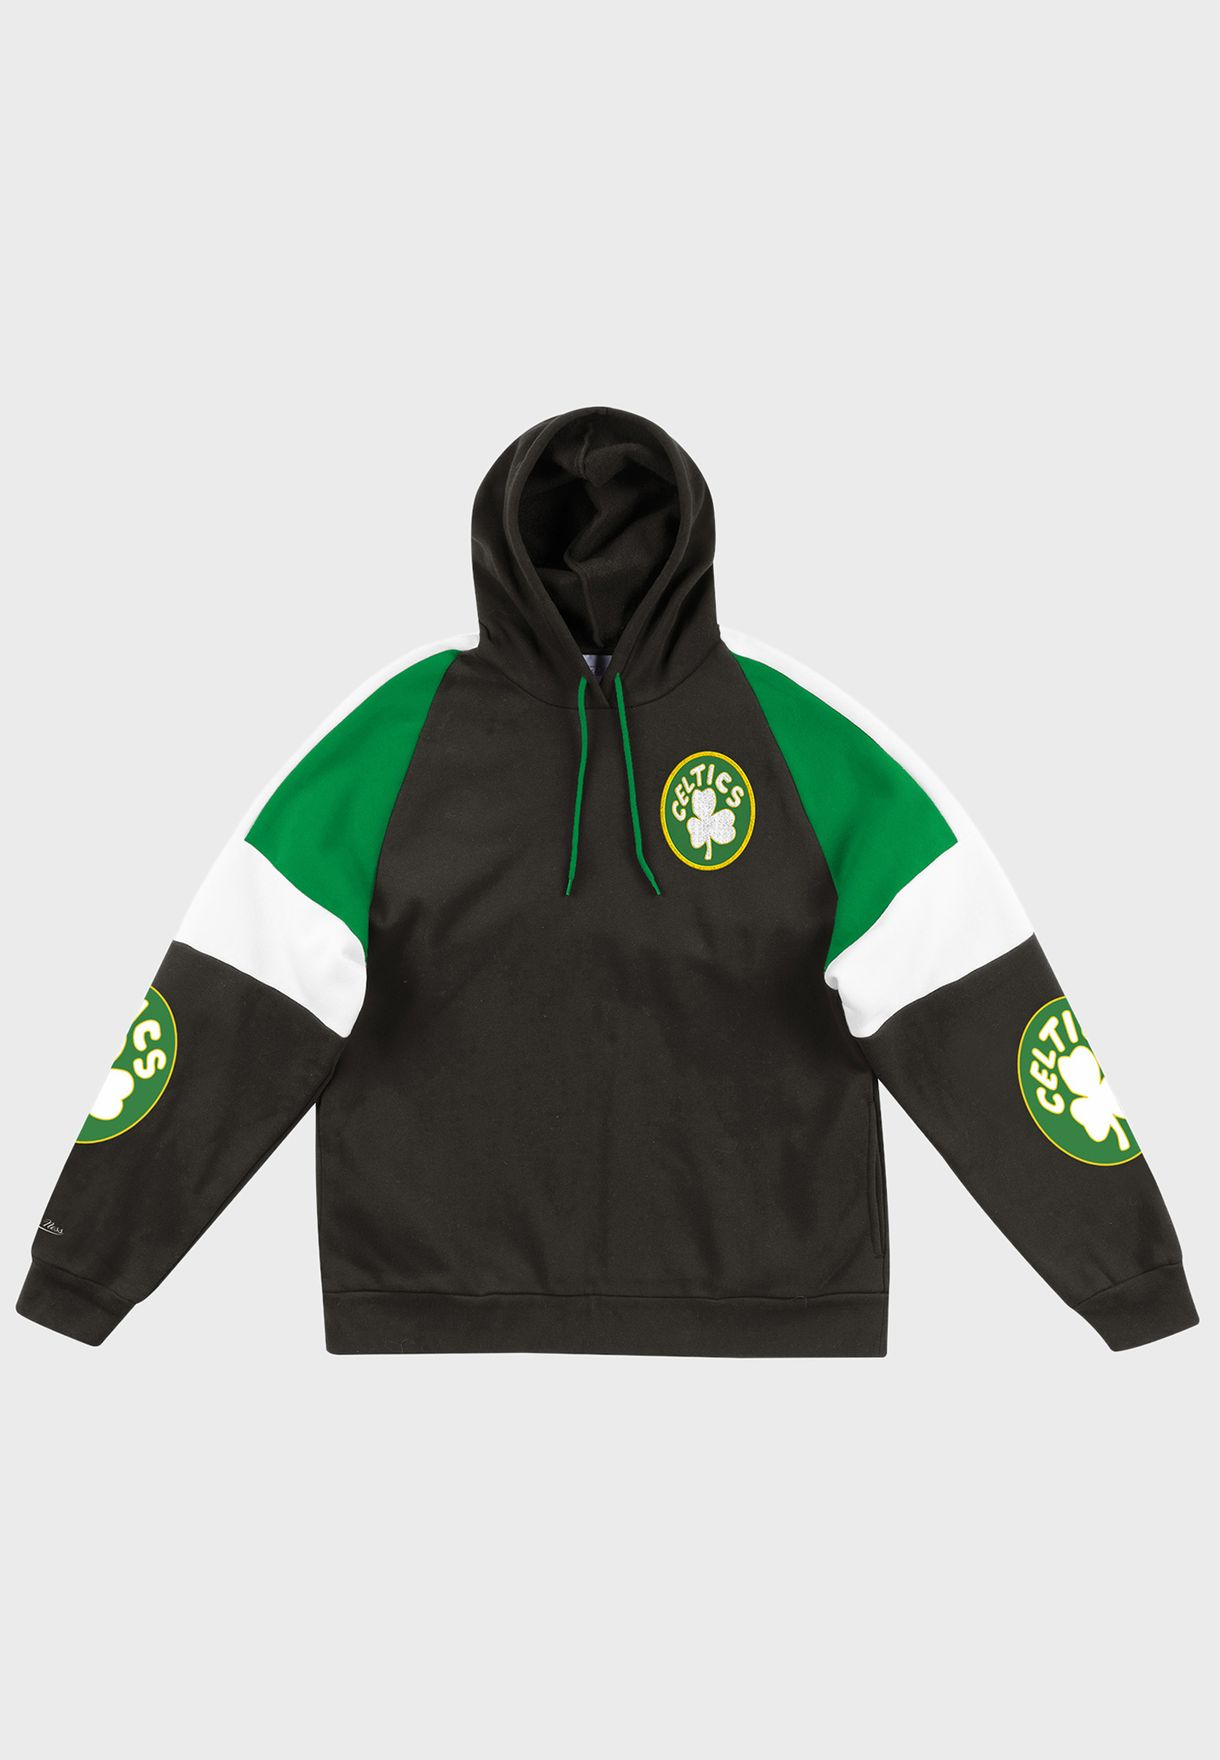 Boston Celtics Instant Replay Hoodie